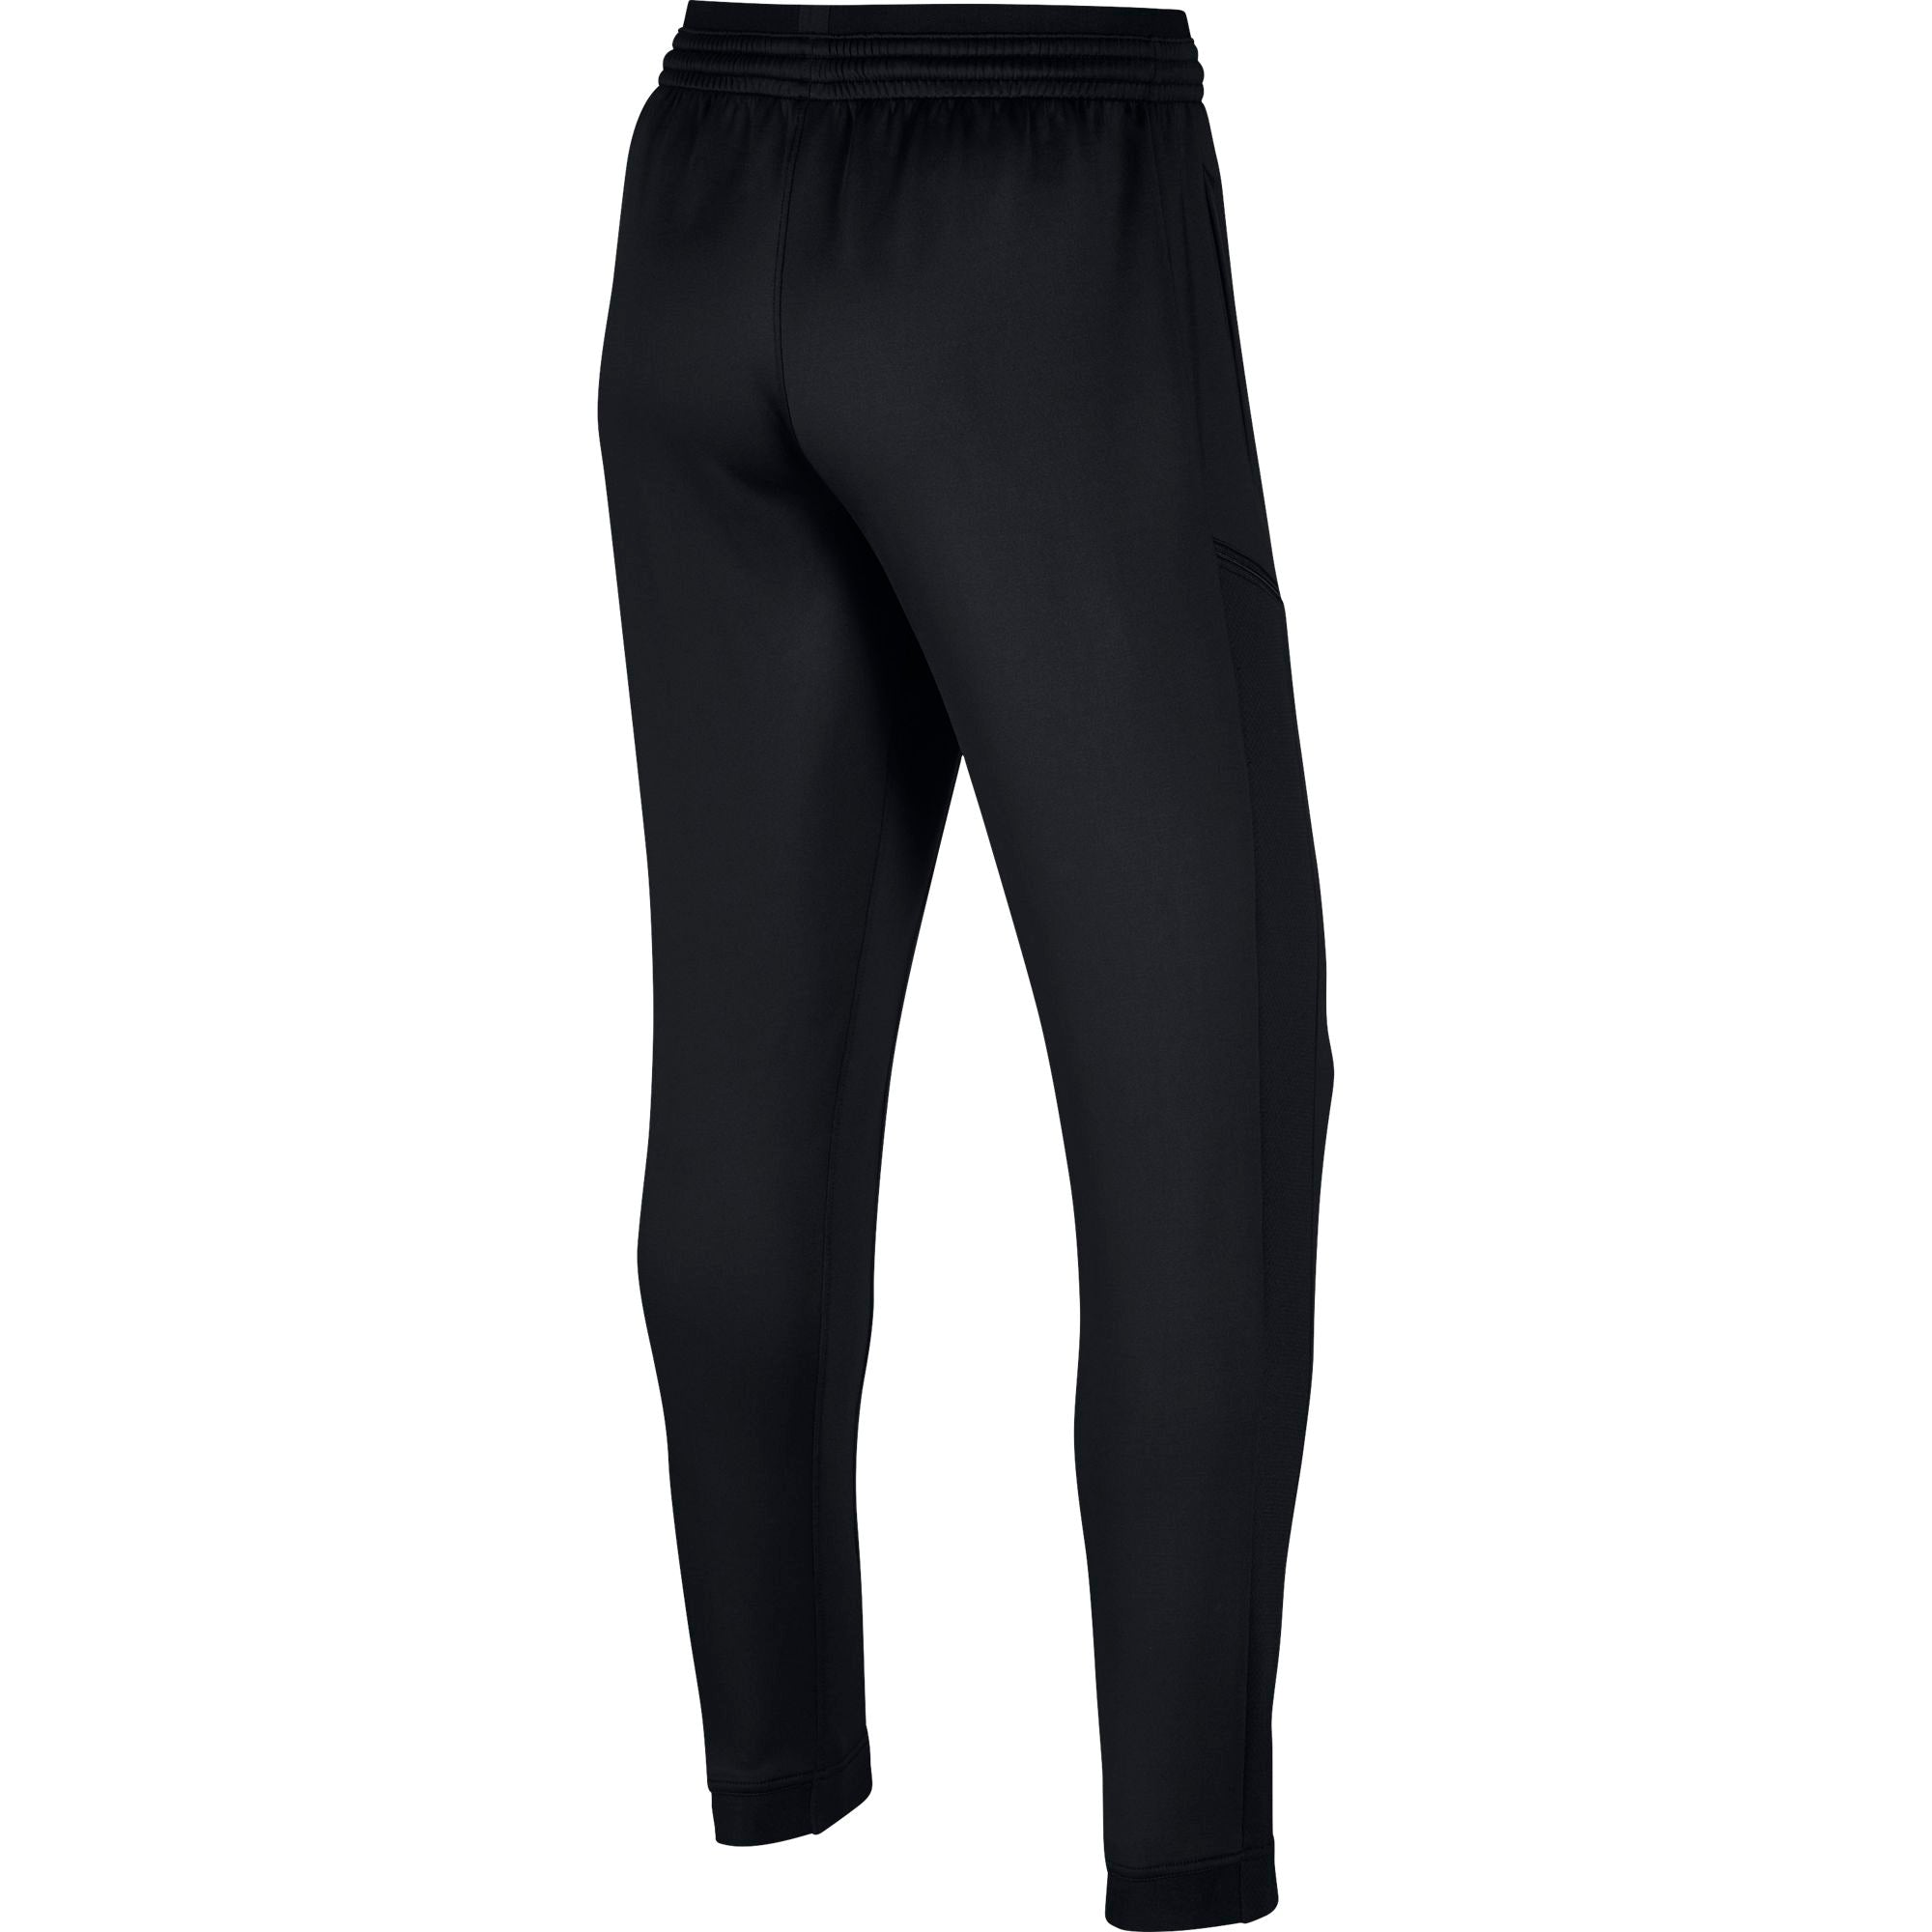 Nike Basketball Therma Flex Showtime Pants - Black/White